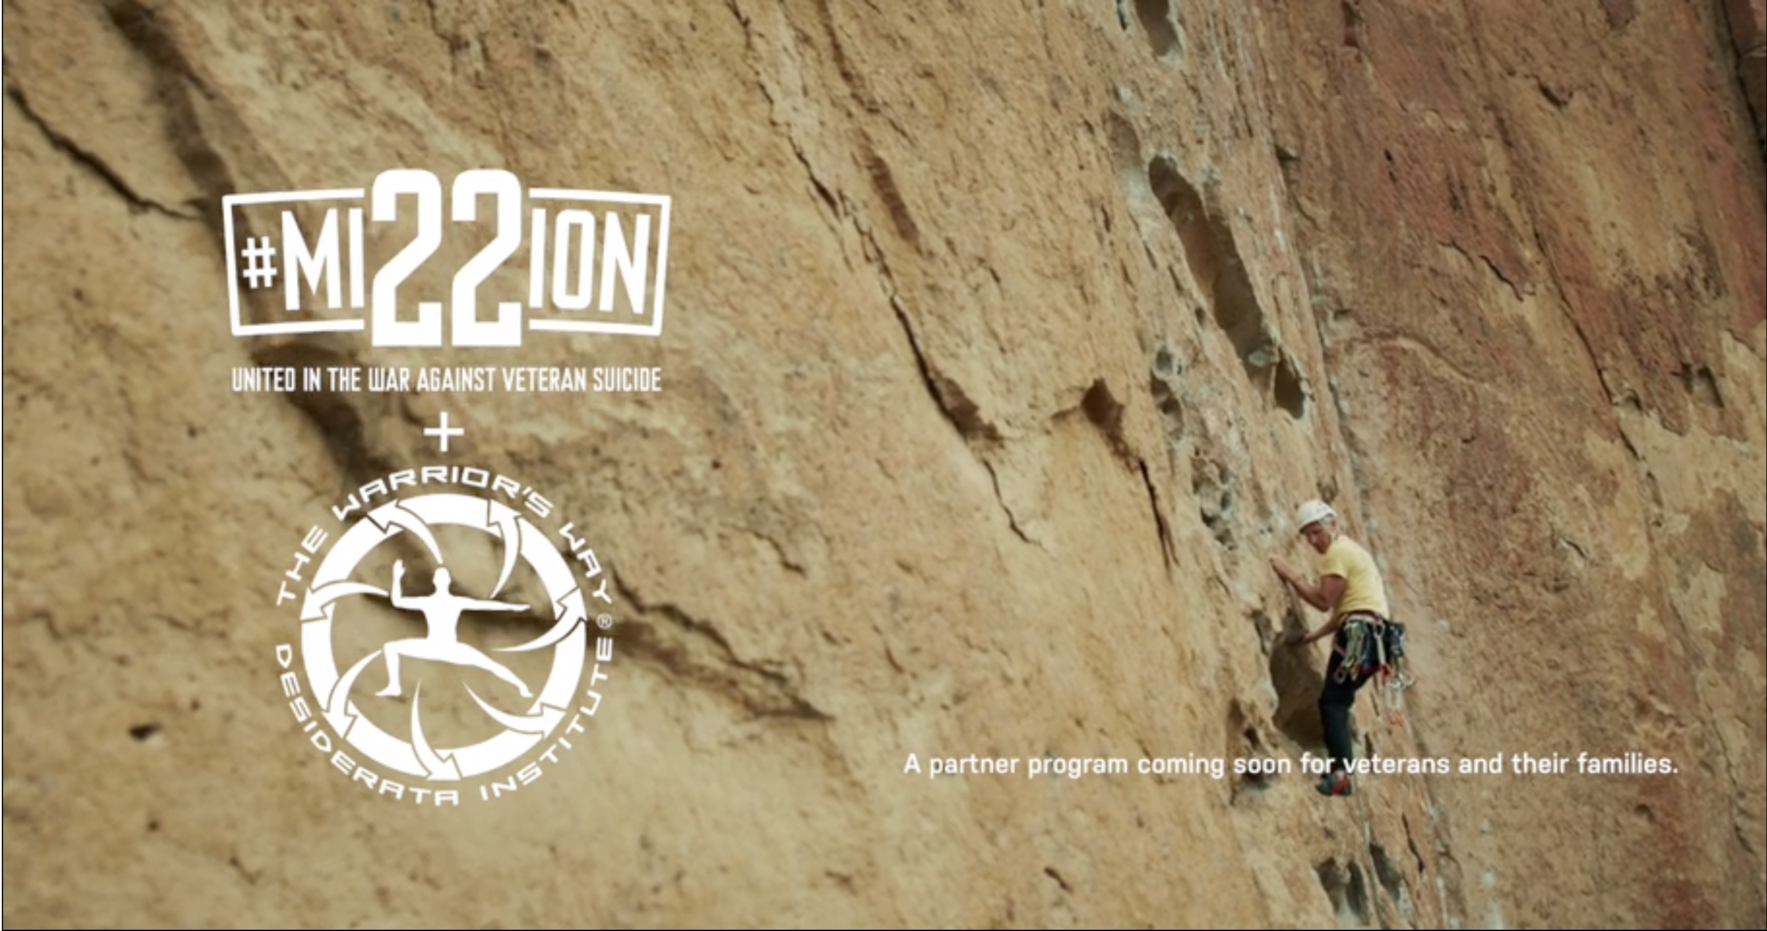 Thank you for your support of Mission 22 and The Warrior's Way Climbing Program image